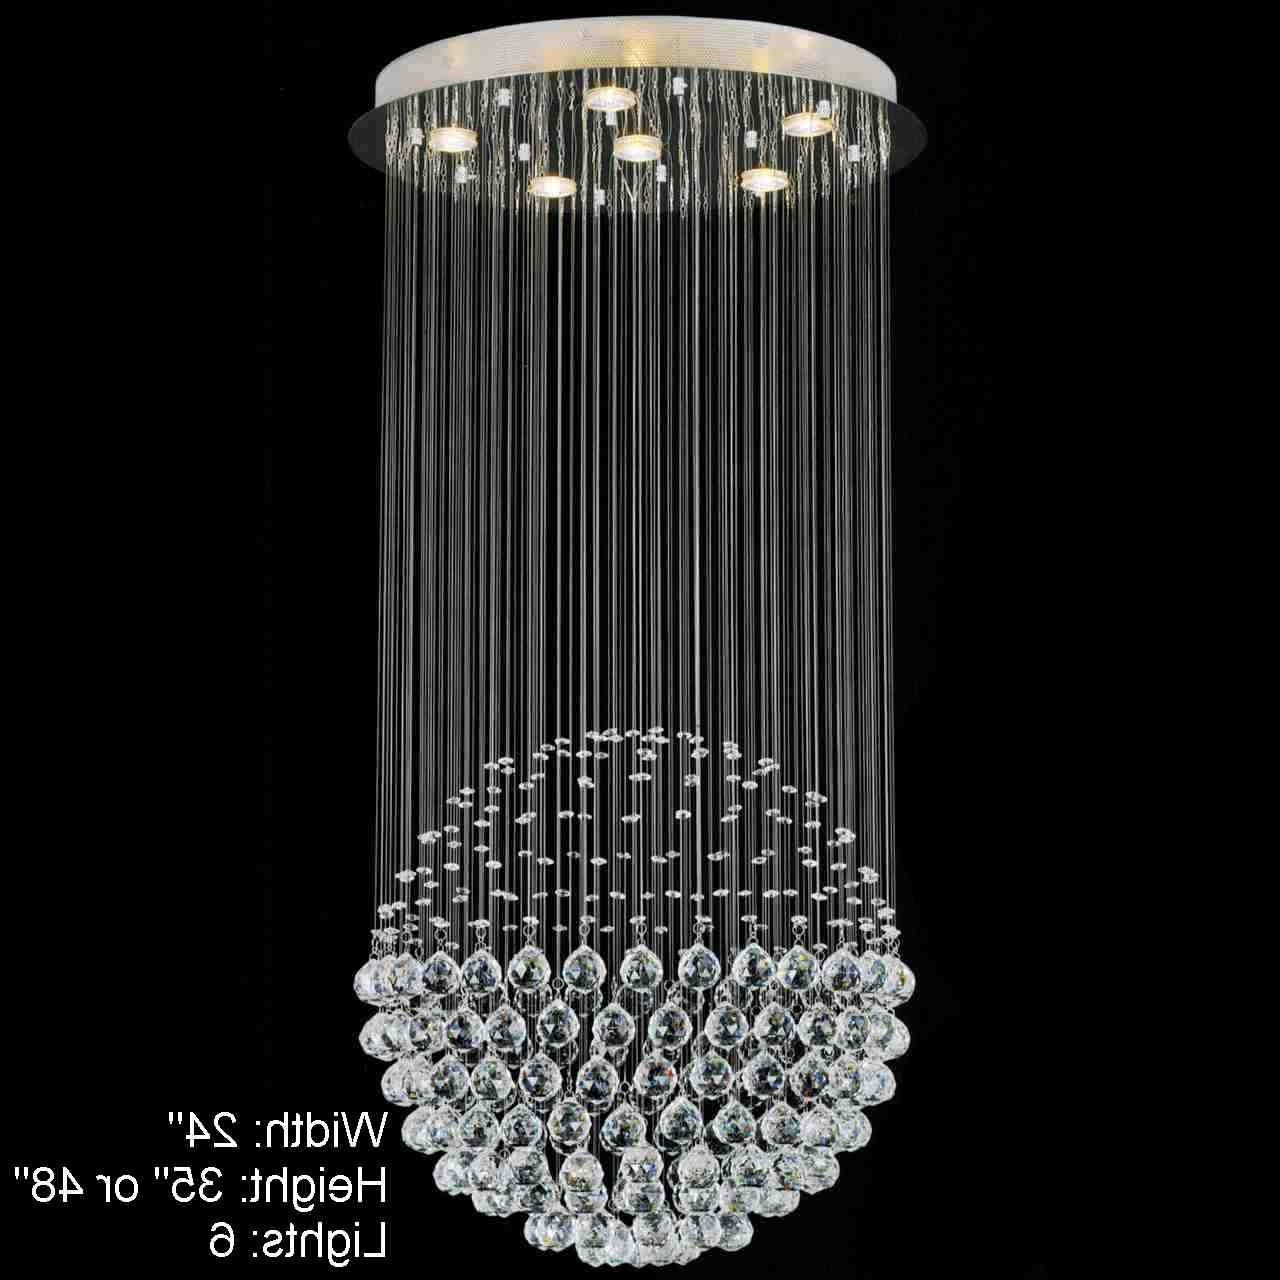 Chandelier Lights Intended For Latest Brizzo Lighting Stores (View 3 of 15)